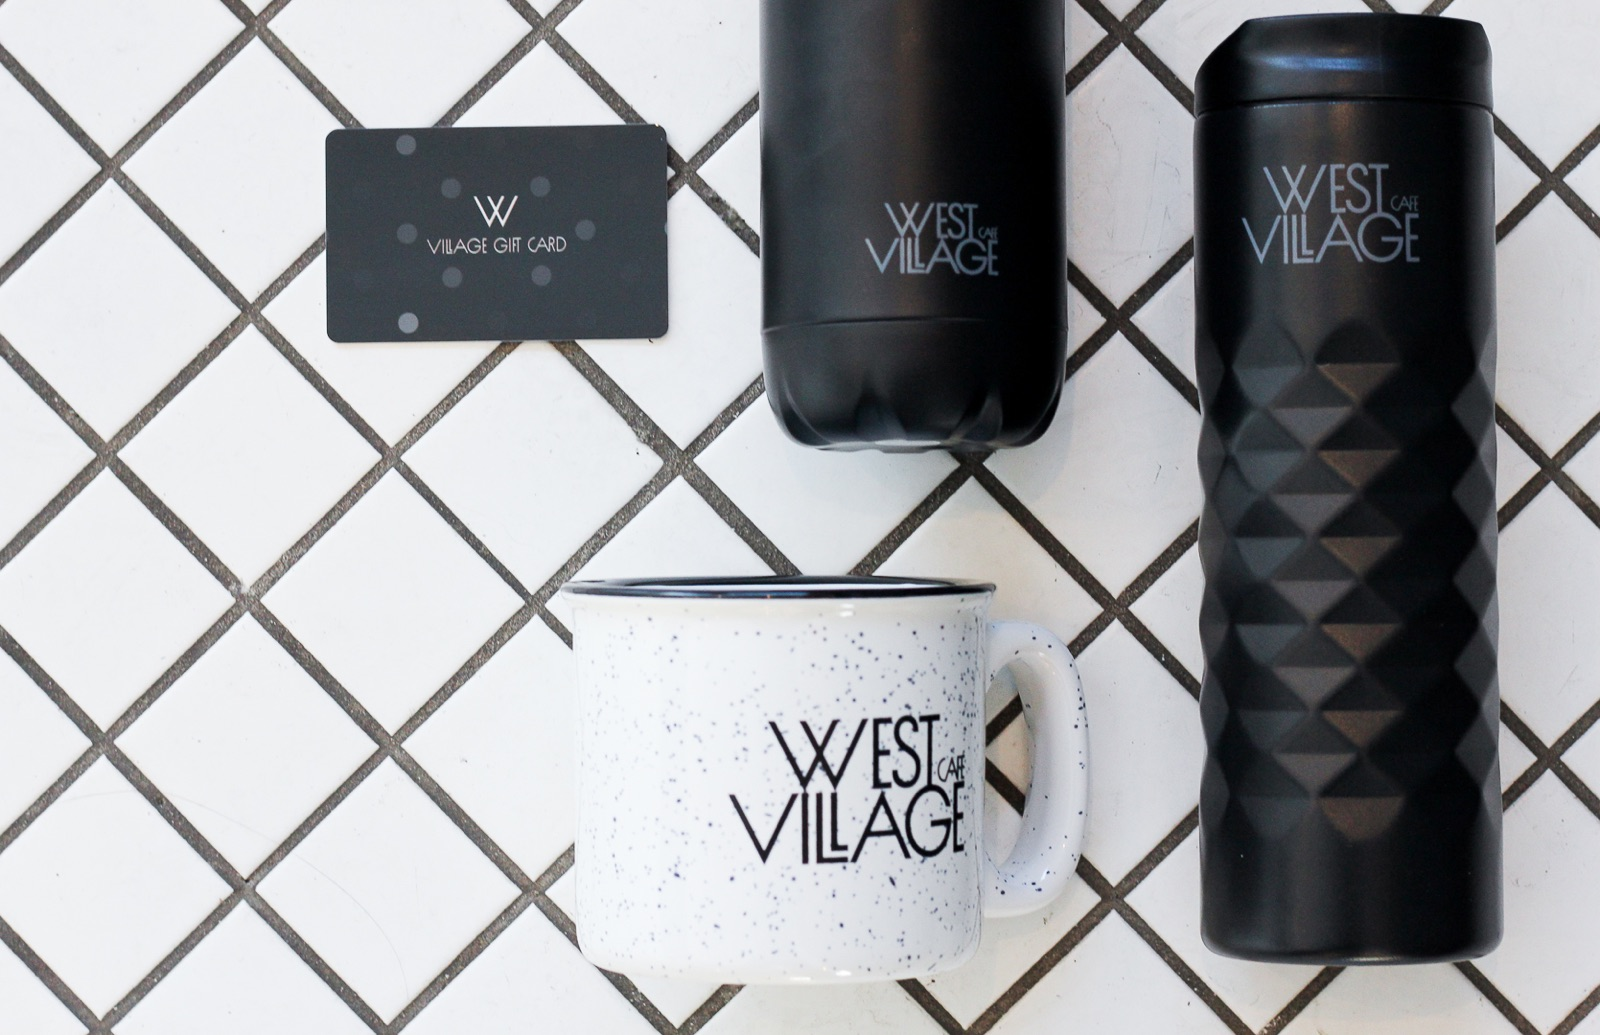 West Village cafe -